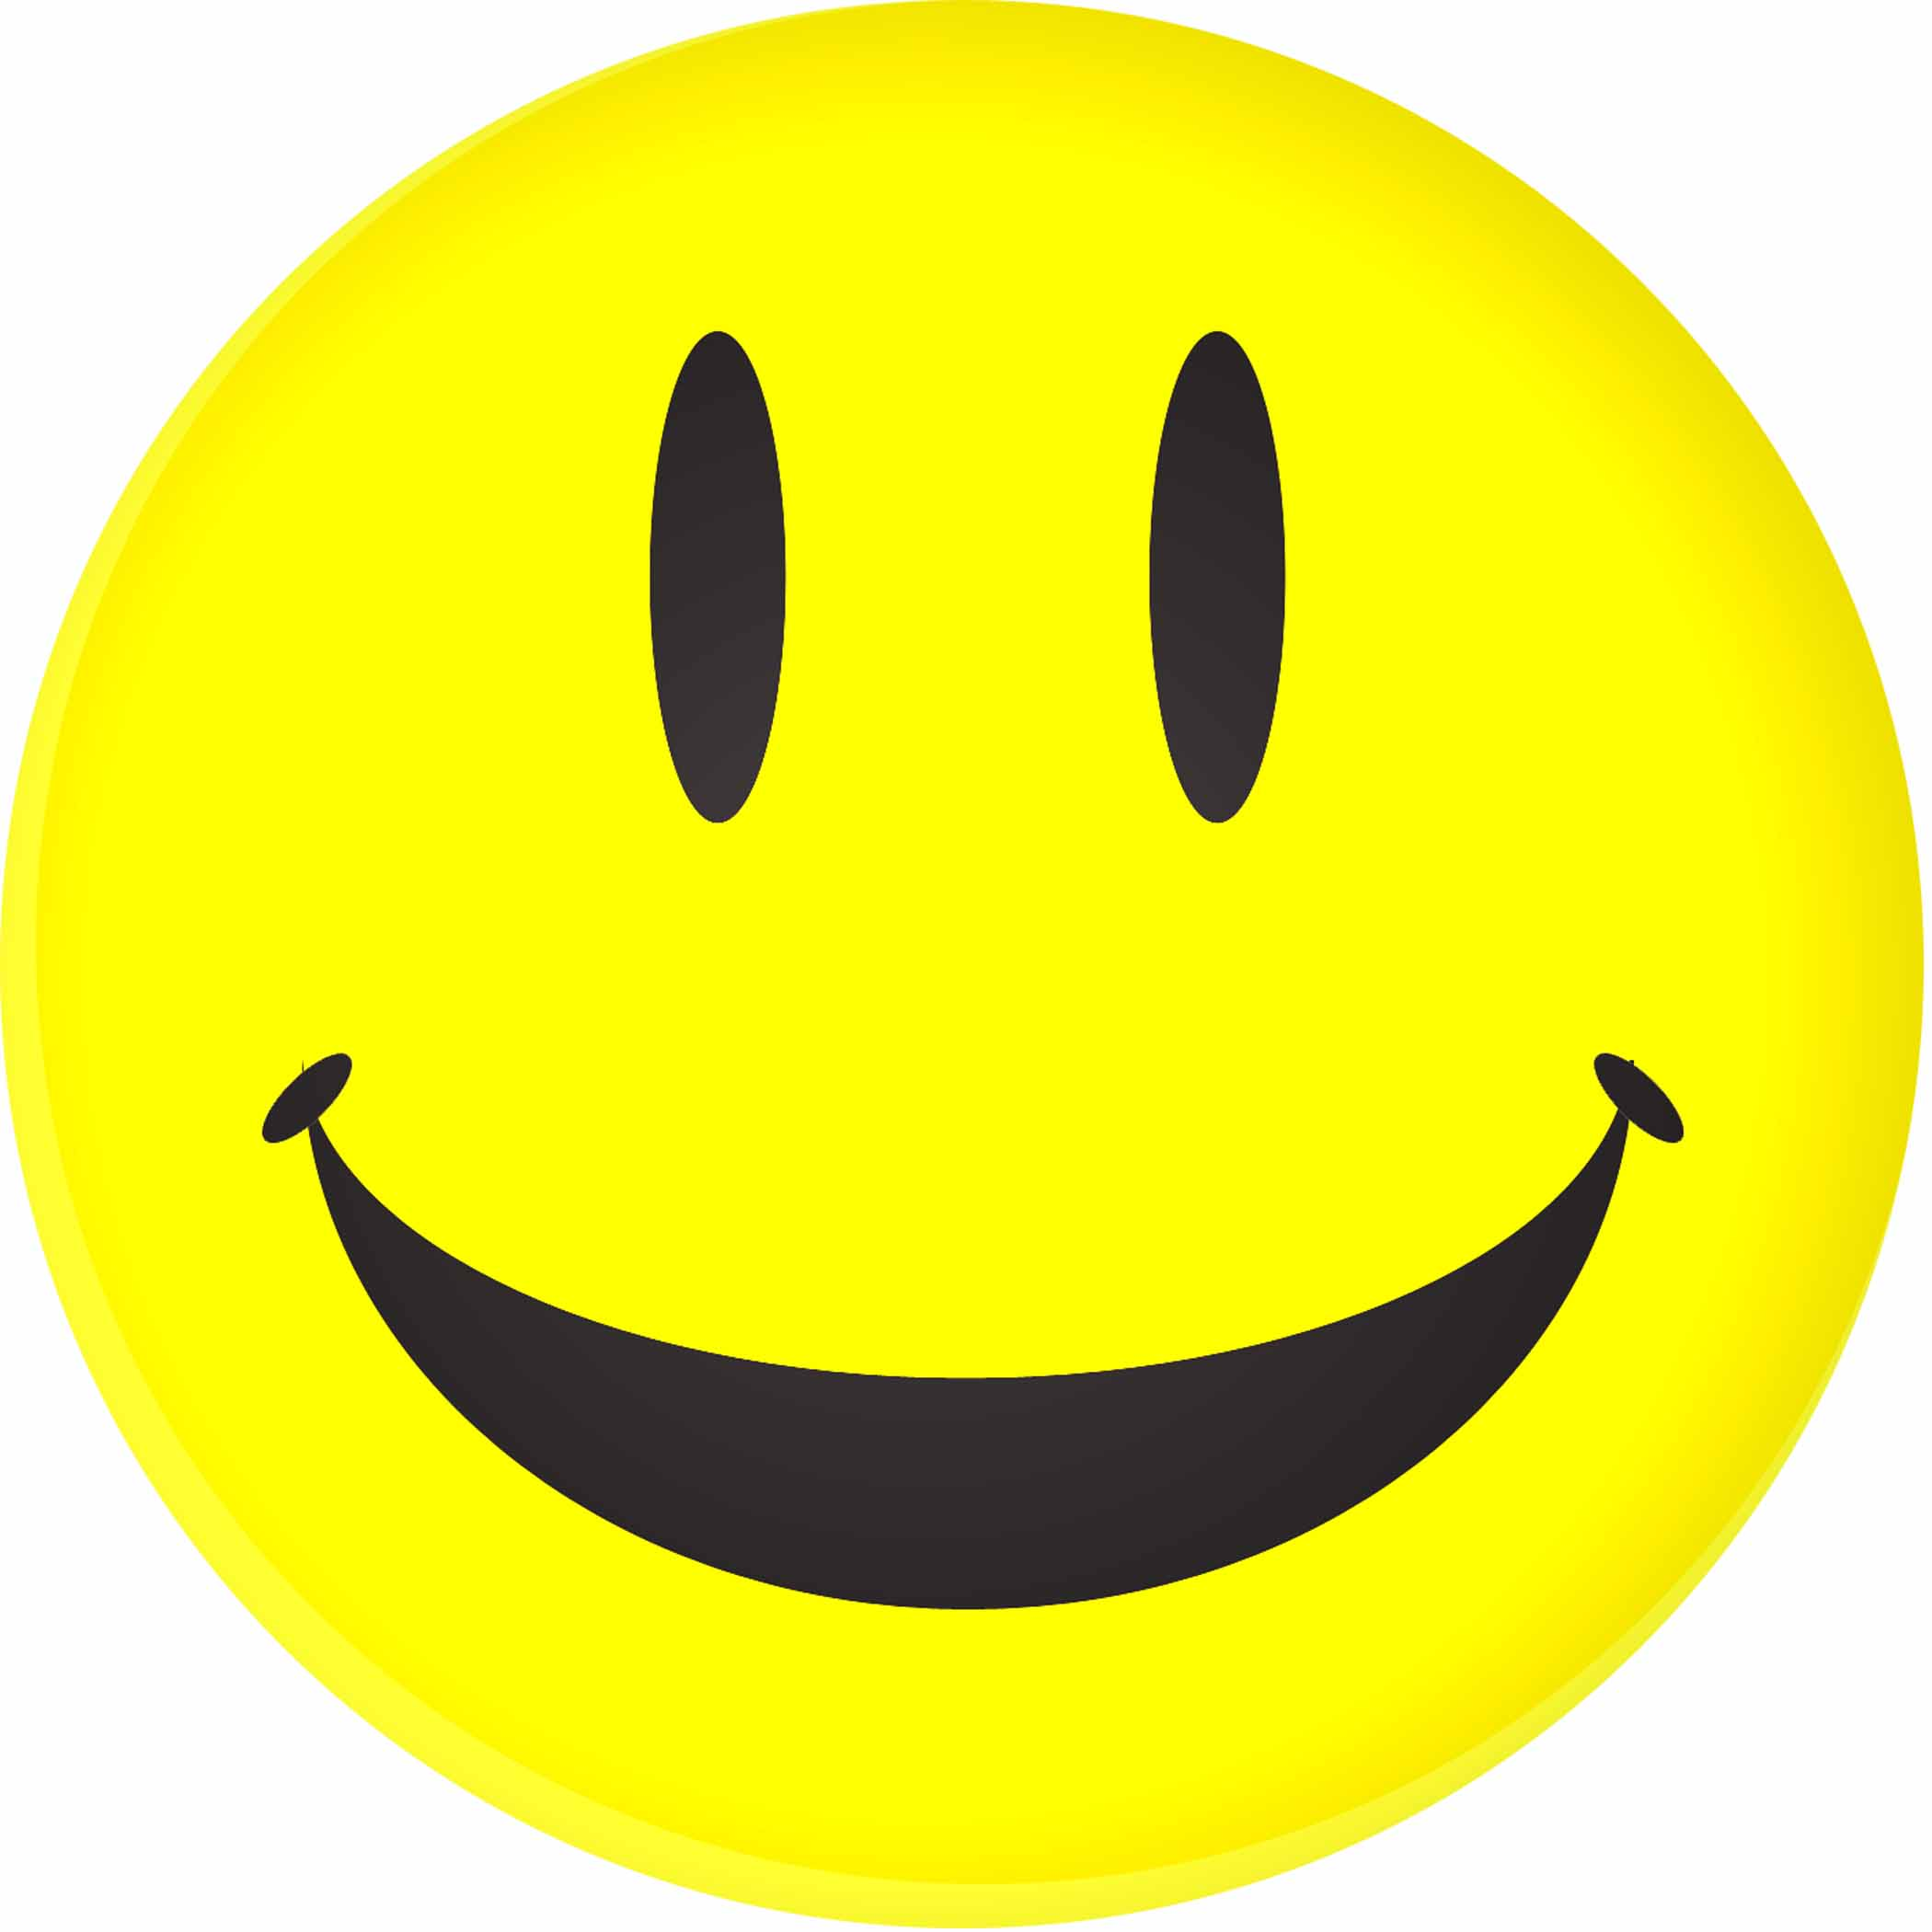 Animated Smiley Faces Clip Art - ClipArt Best